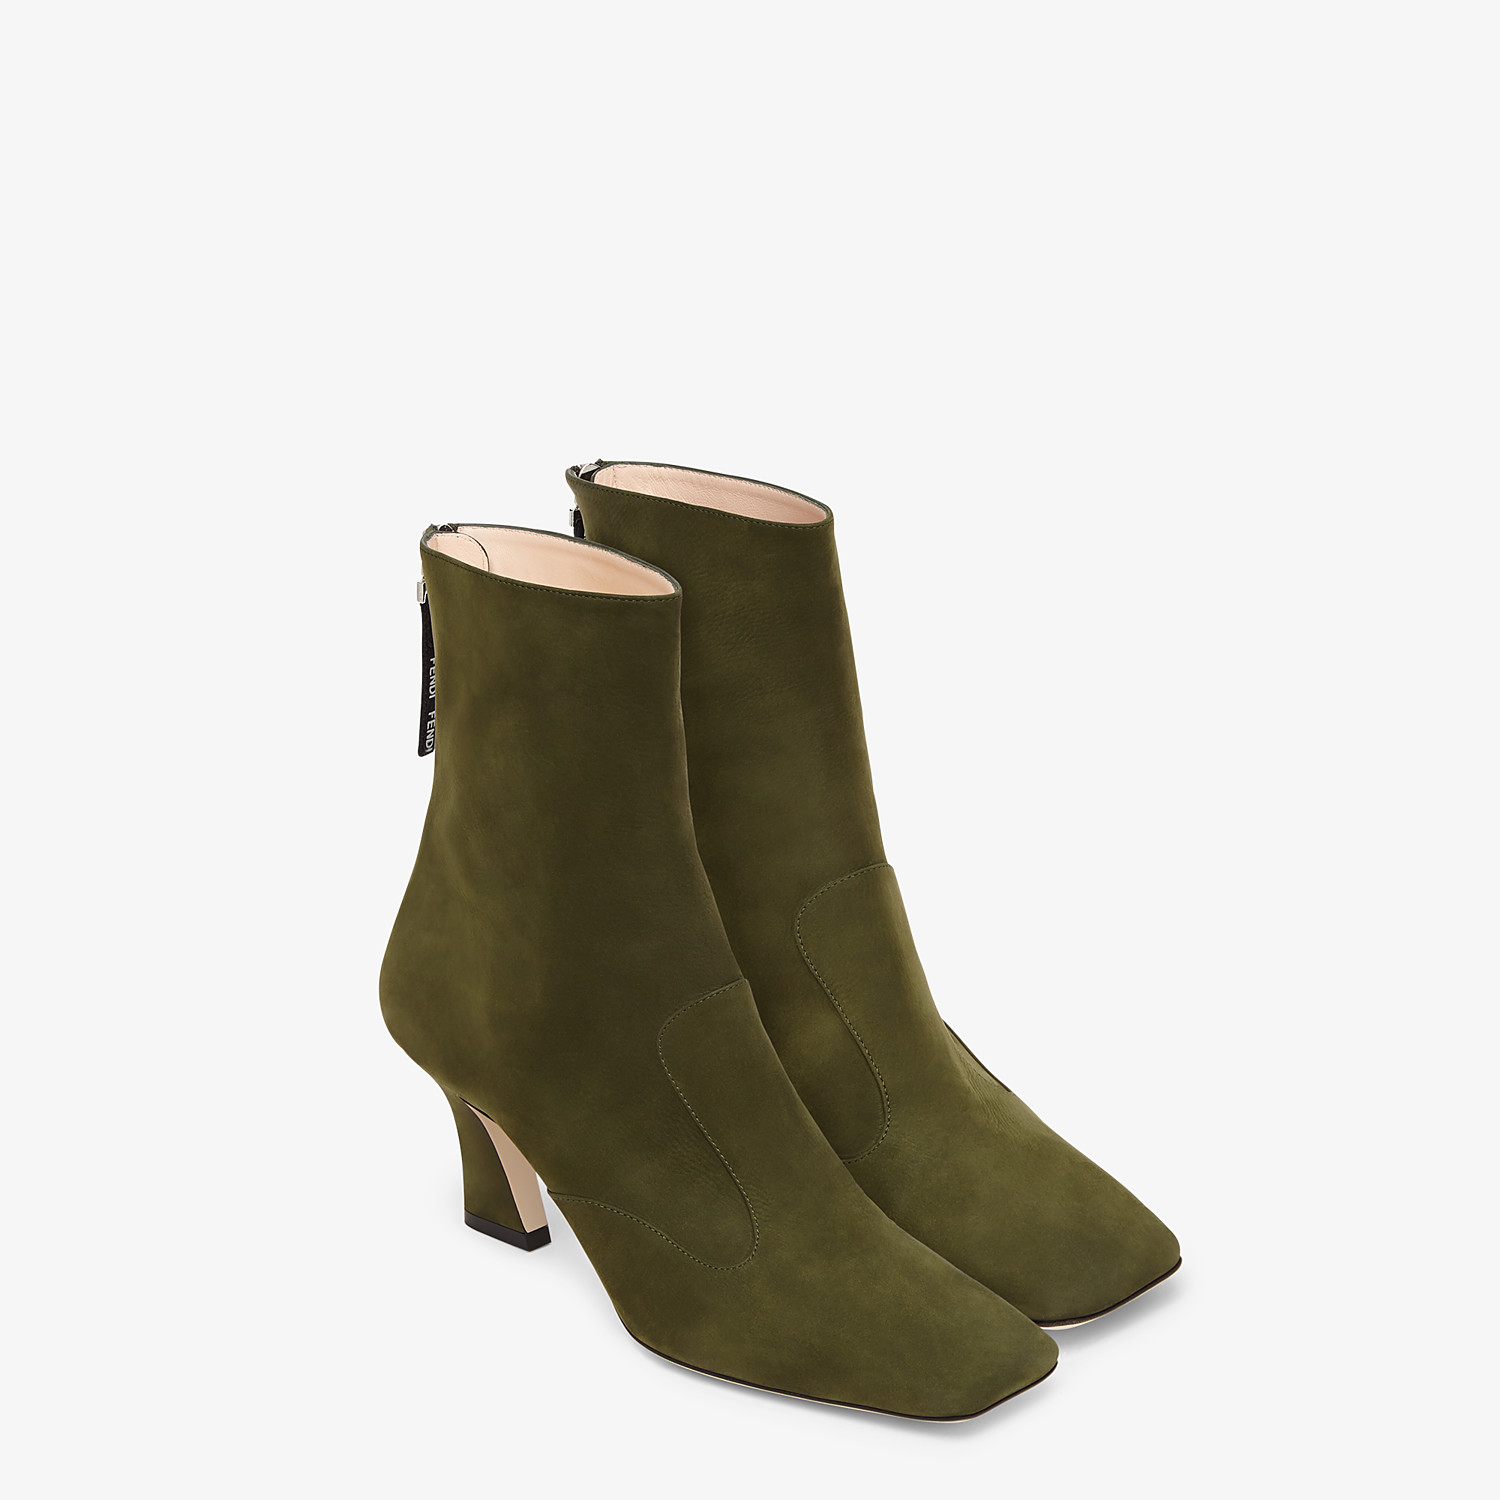 FENDI ANKLE BOOTS - Booties in green nubuck leather - view 4 detail